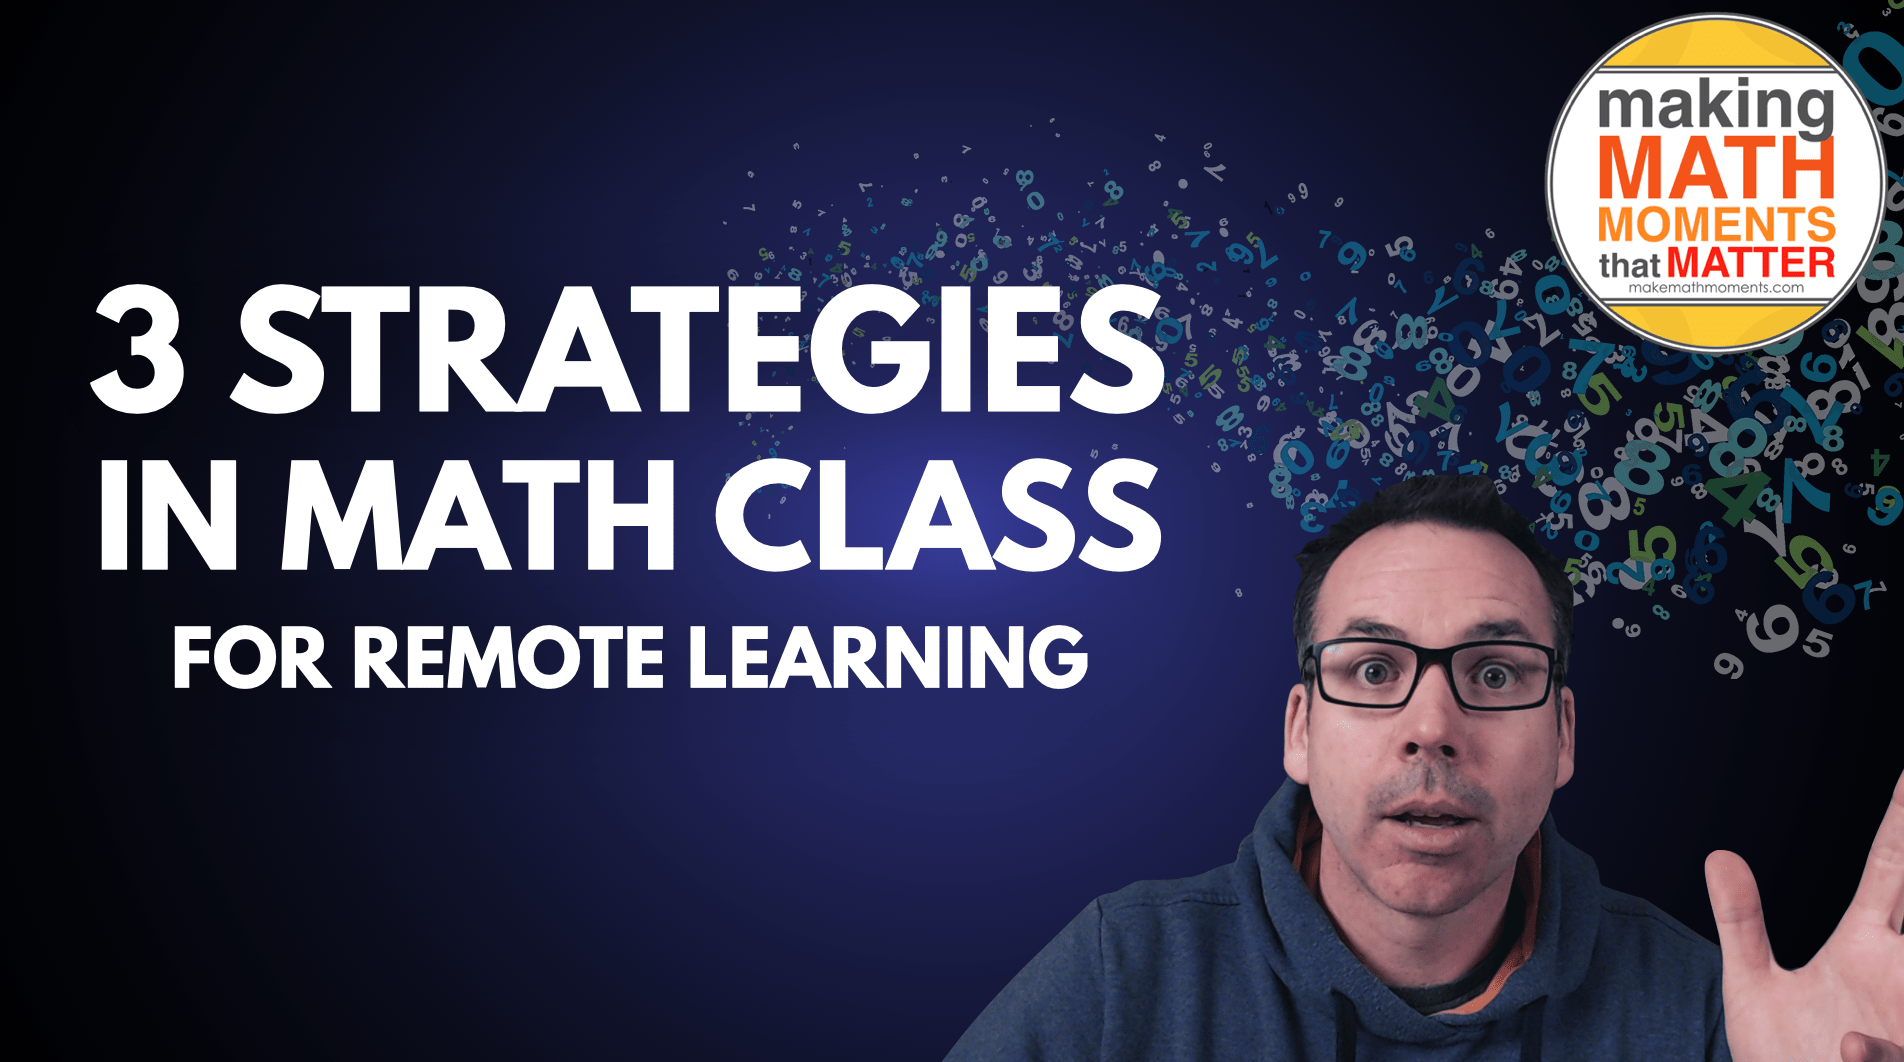 3 Math Strategies To Engage Students While Teaching Remotely